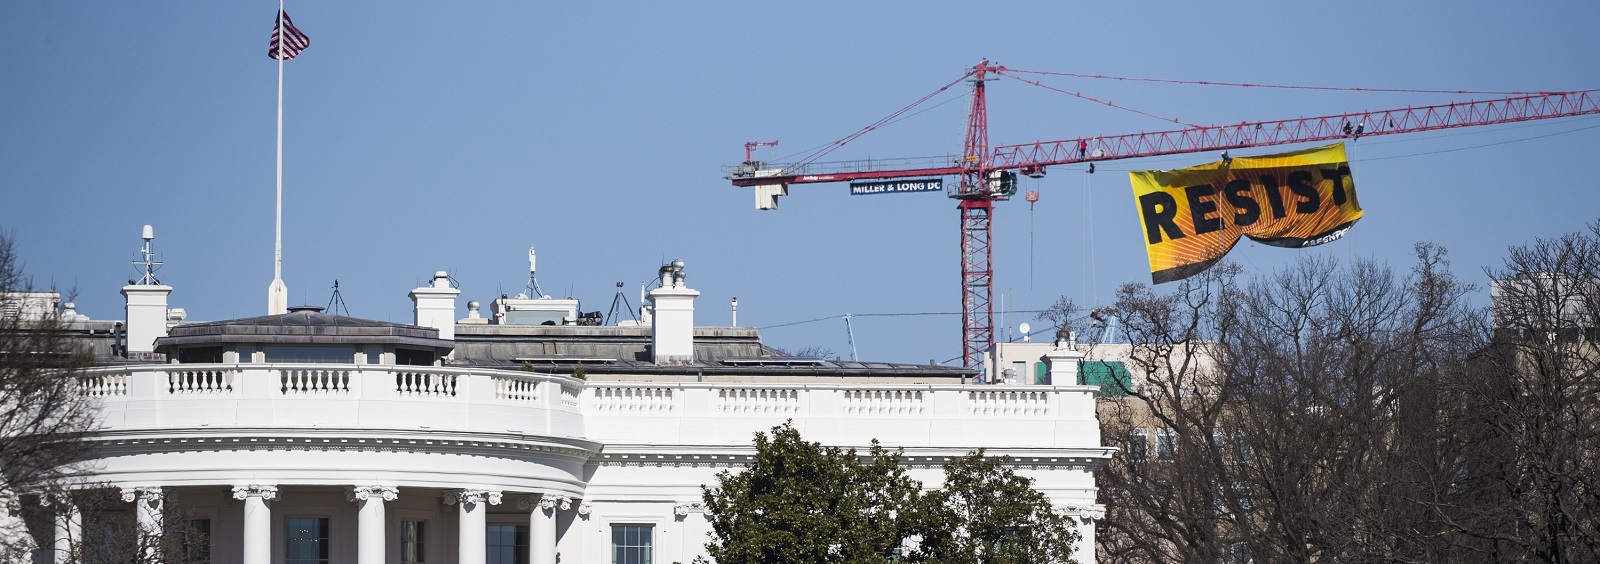 An anti-Trump sign saying 'resist' hung from a crane by Greenpeace seen behind the White House. (Photo by Samuel Corum/Anadolu Agency/Getty Images)